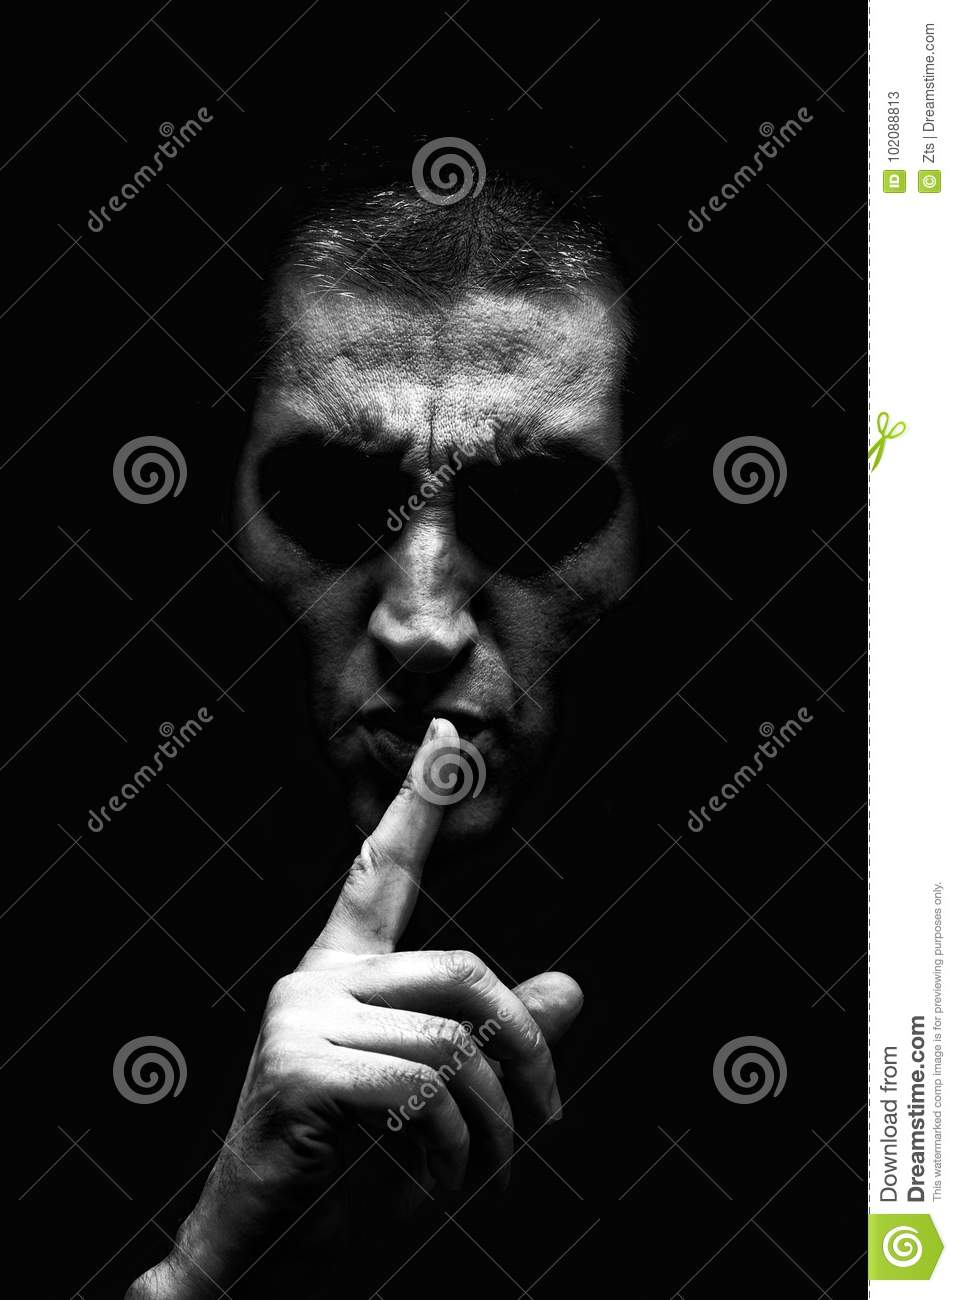 Angry mature man with an aggressive look making the silence sign in a threatening and creepy way